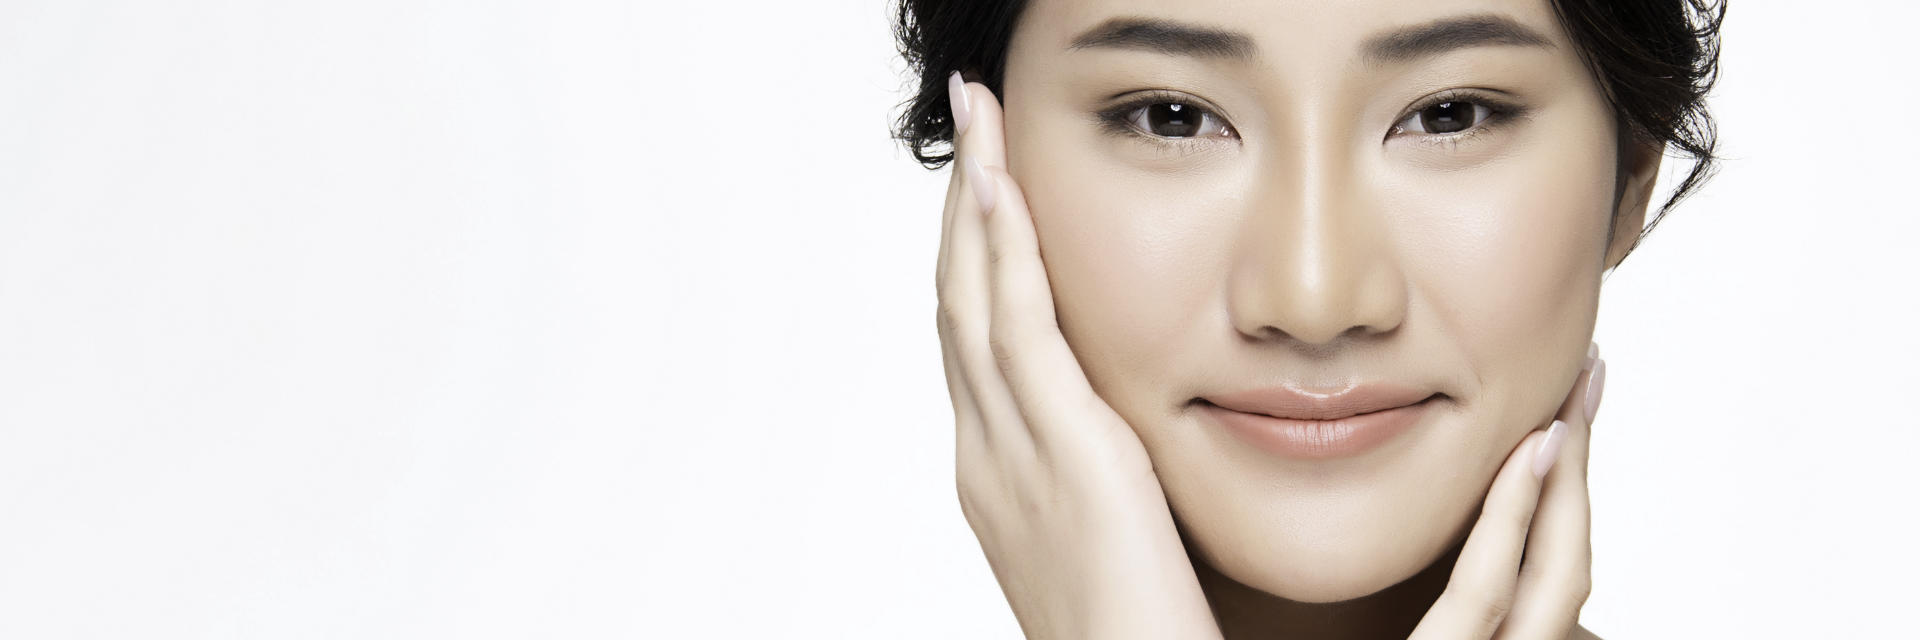 Face of an Asian Woman Considering Rhinoplasty